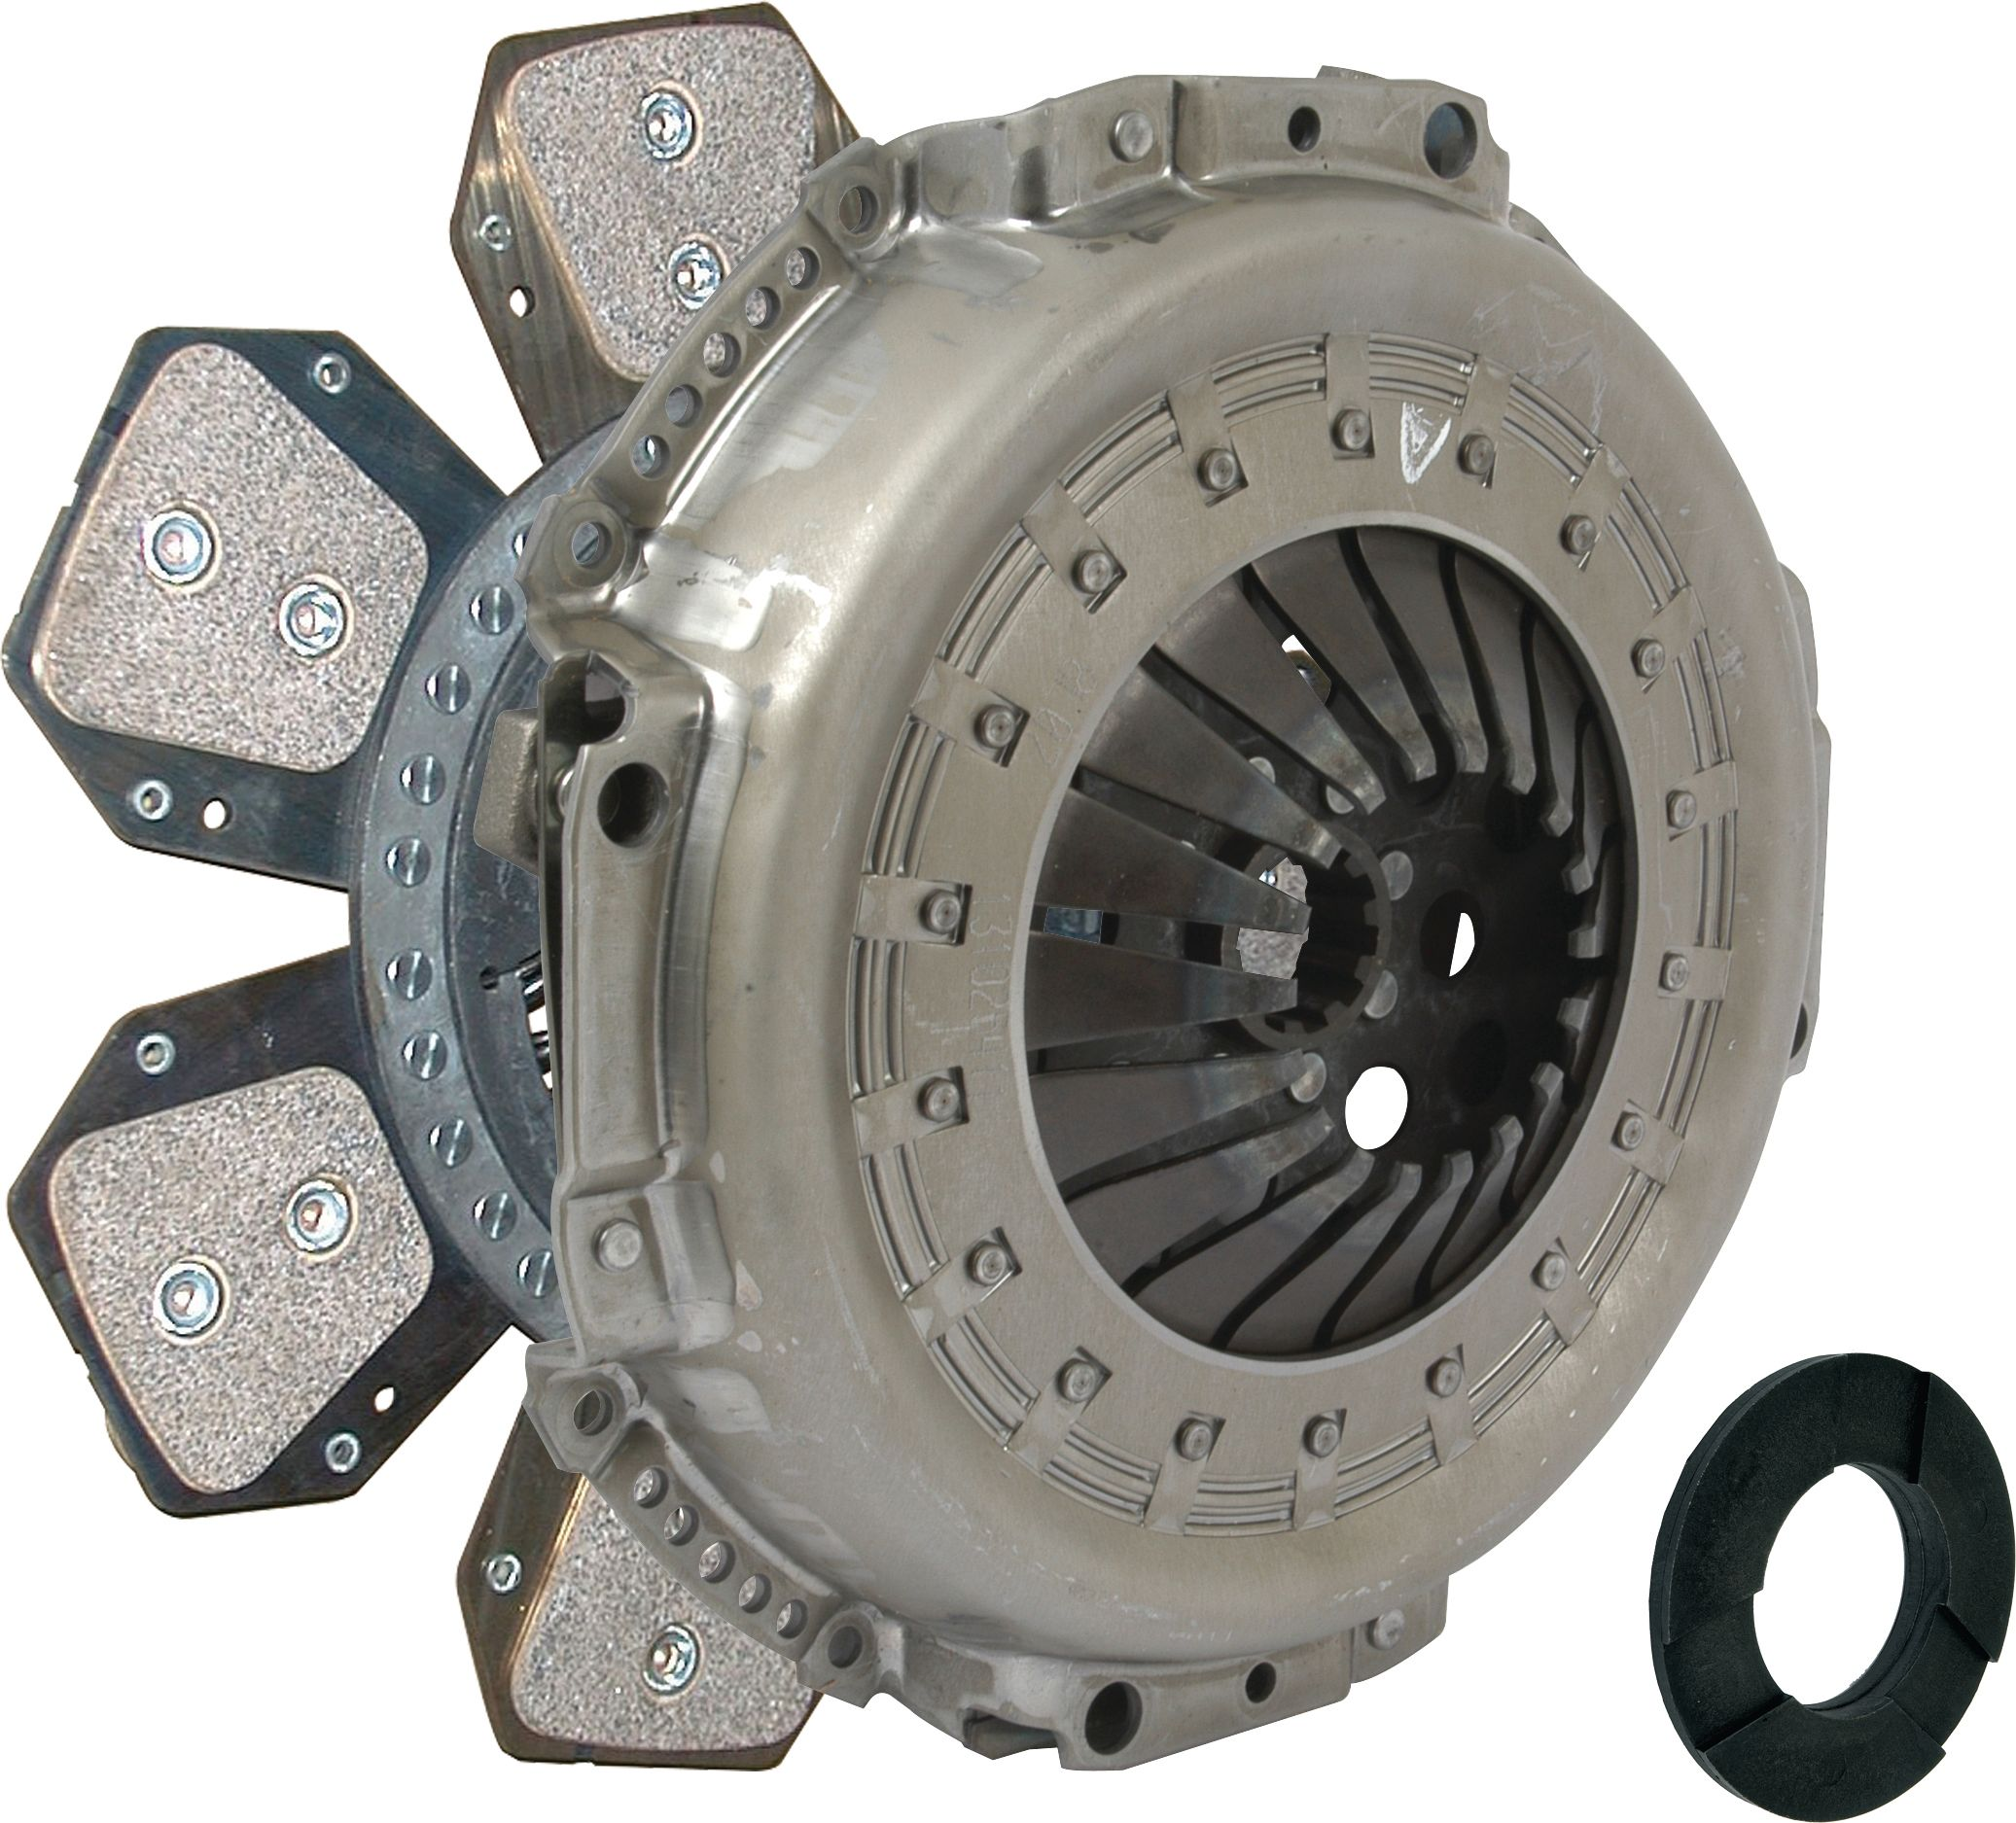 MCCORMICK CLUTCH KIT WITHOUT BEARINGS